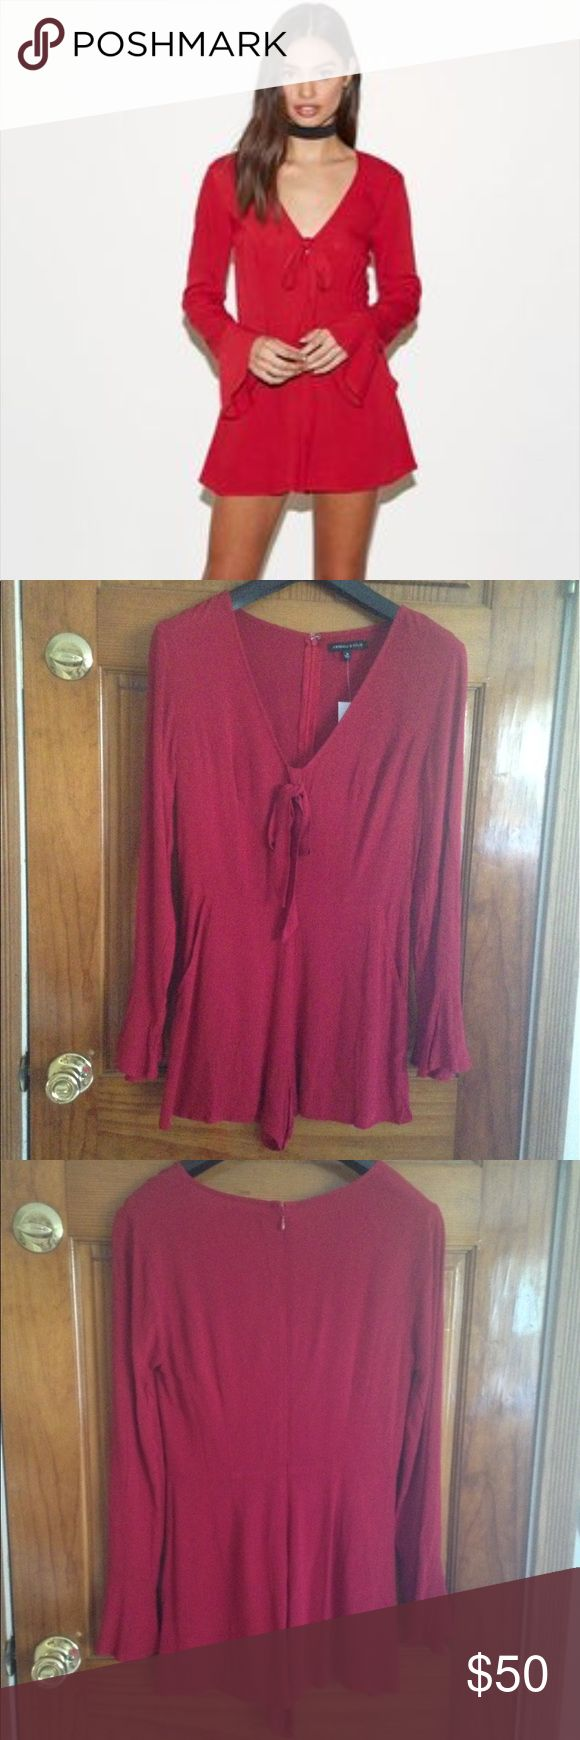 New Listing! NWT Kendall & Kylie romper NWT Kendall & Kylie deep-v long sleeve romper size Small originally $49.95. Includes a removable tie fabric near the top of the v-neck. Note I draw through the barcode so it can't be returned. Kendall & Kylie Pants Jumpsuits & Rompers